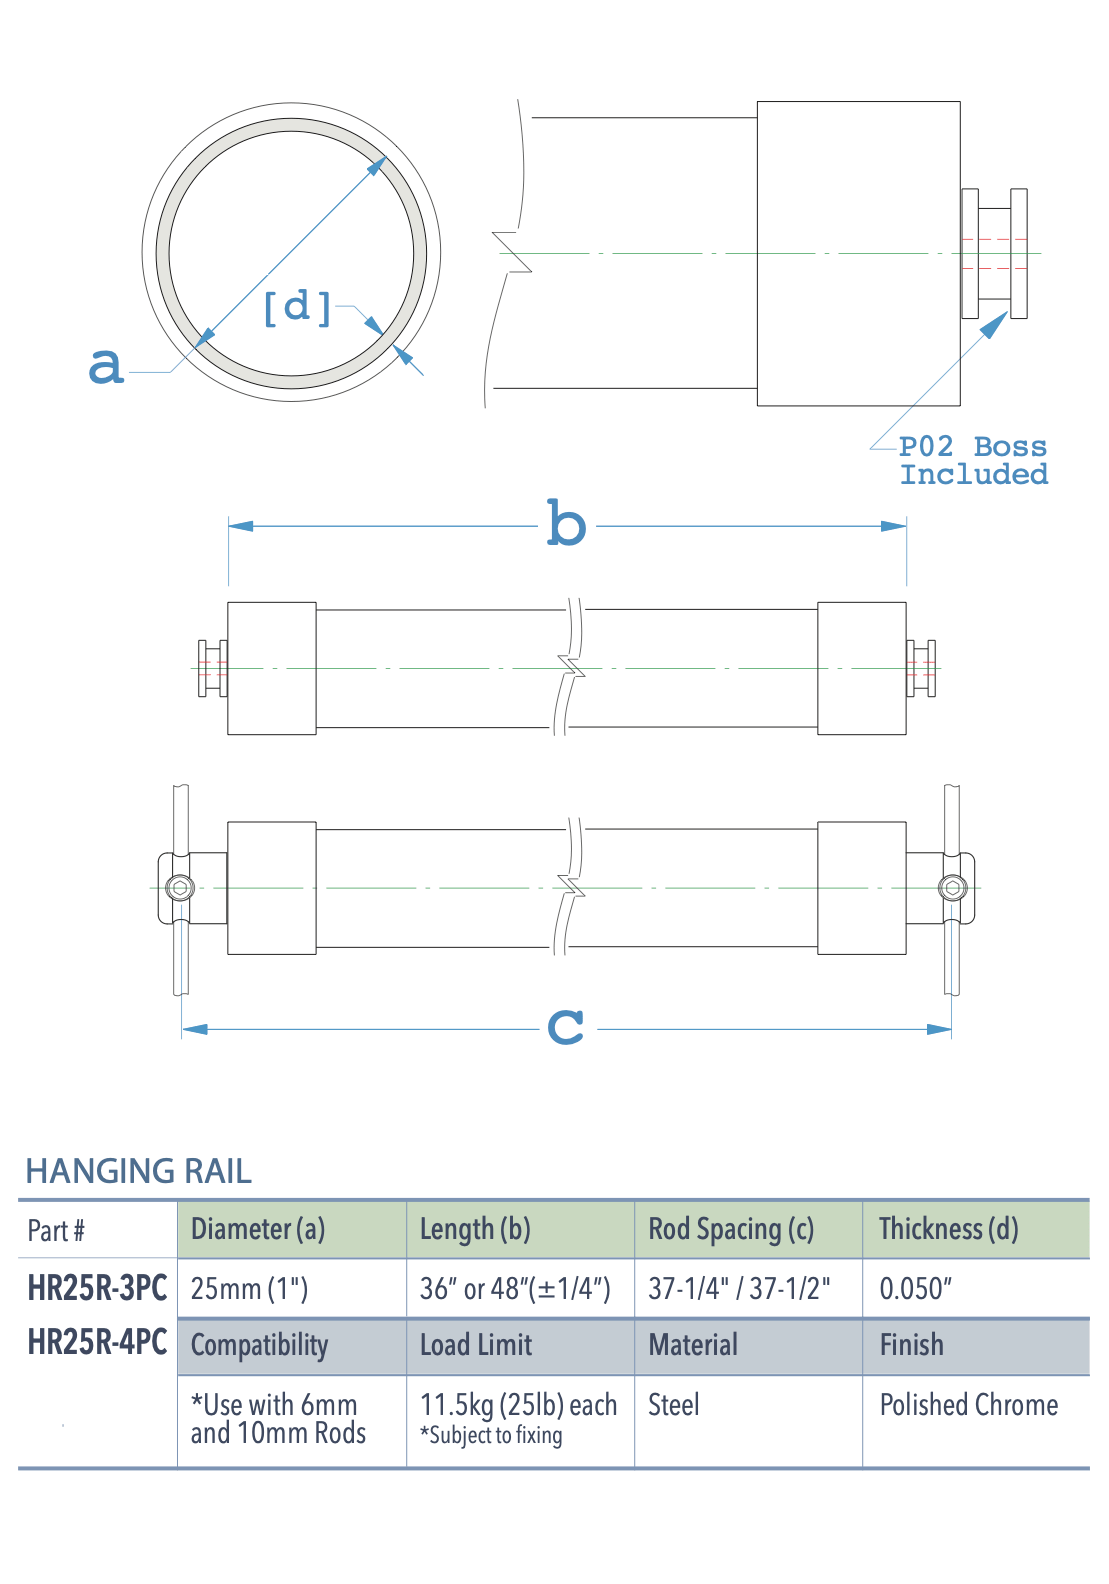 Specifications for HR25R-3PC